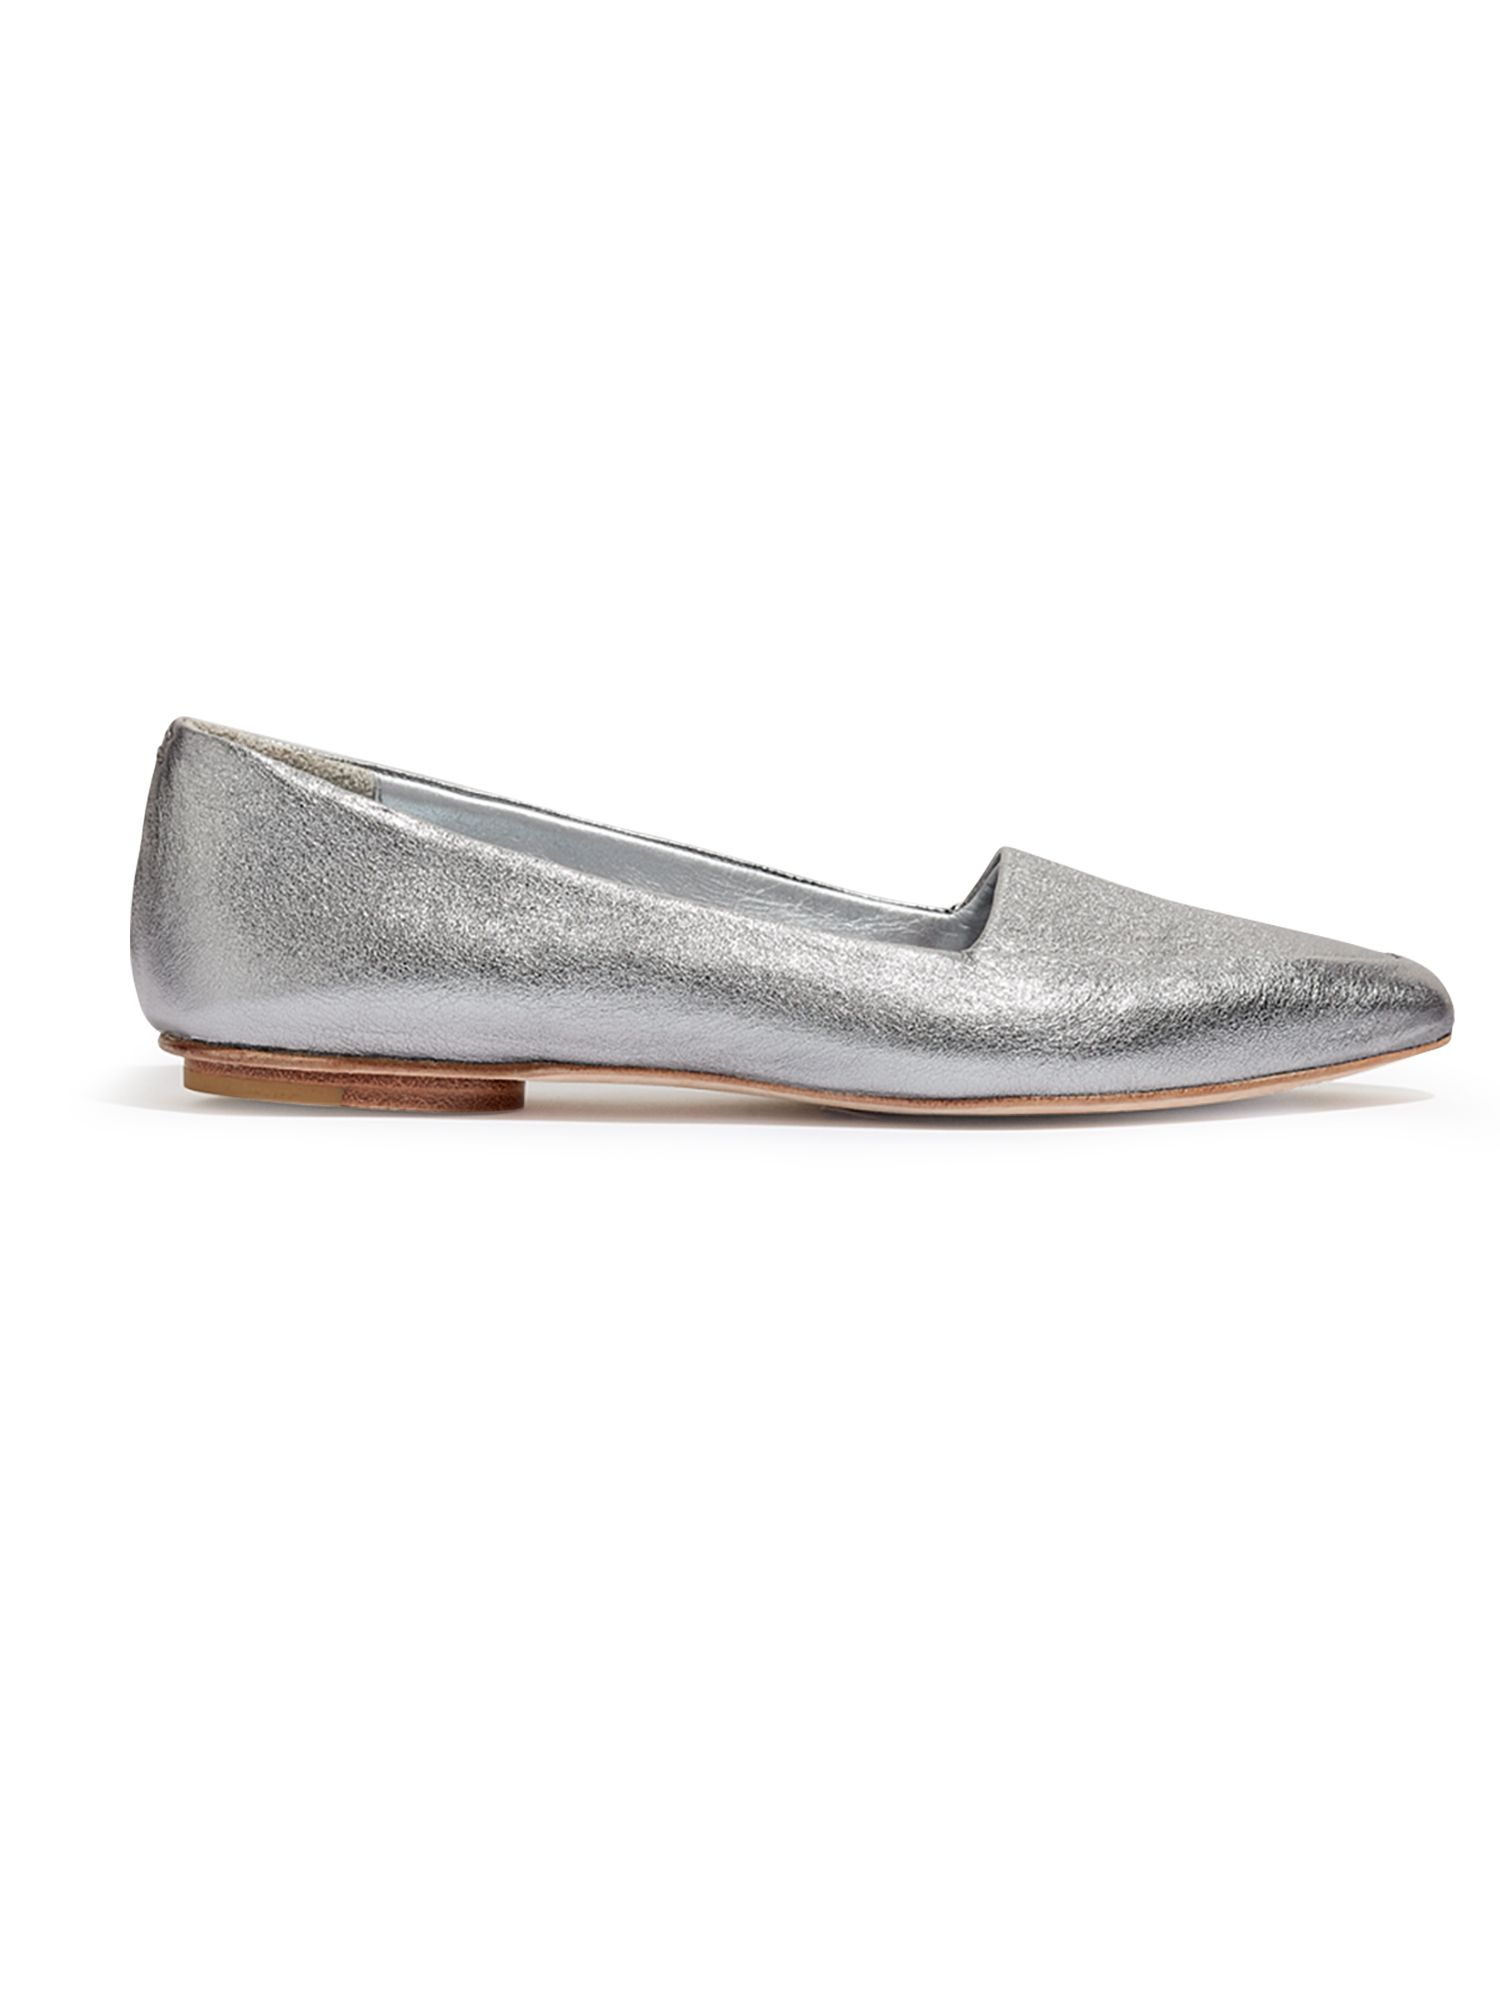 Jigsaw Clarence flat shoes, Pewter